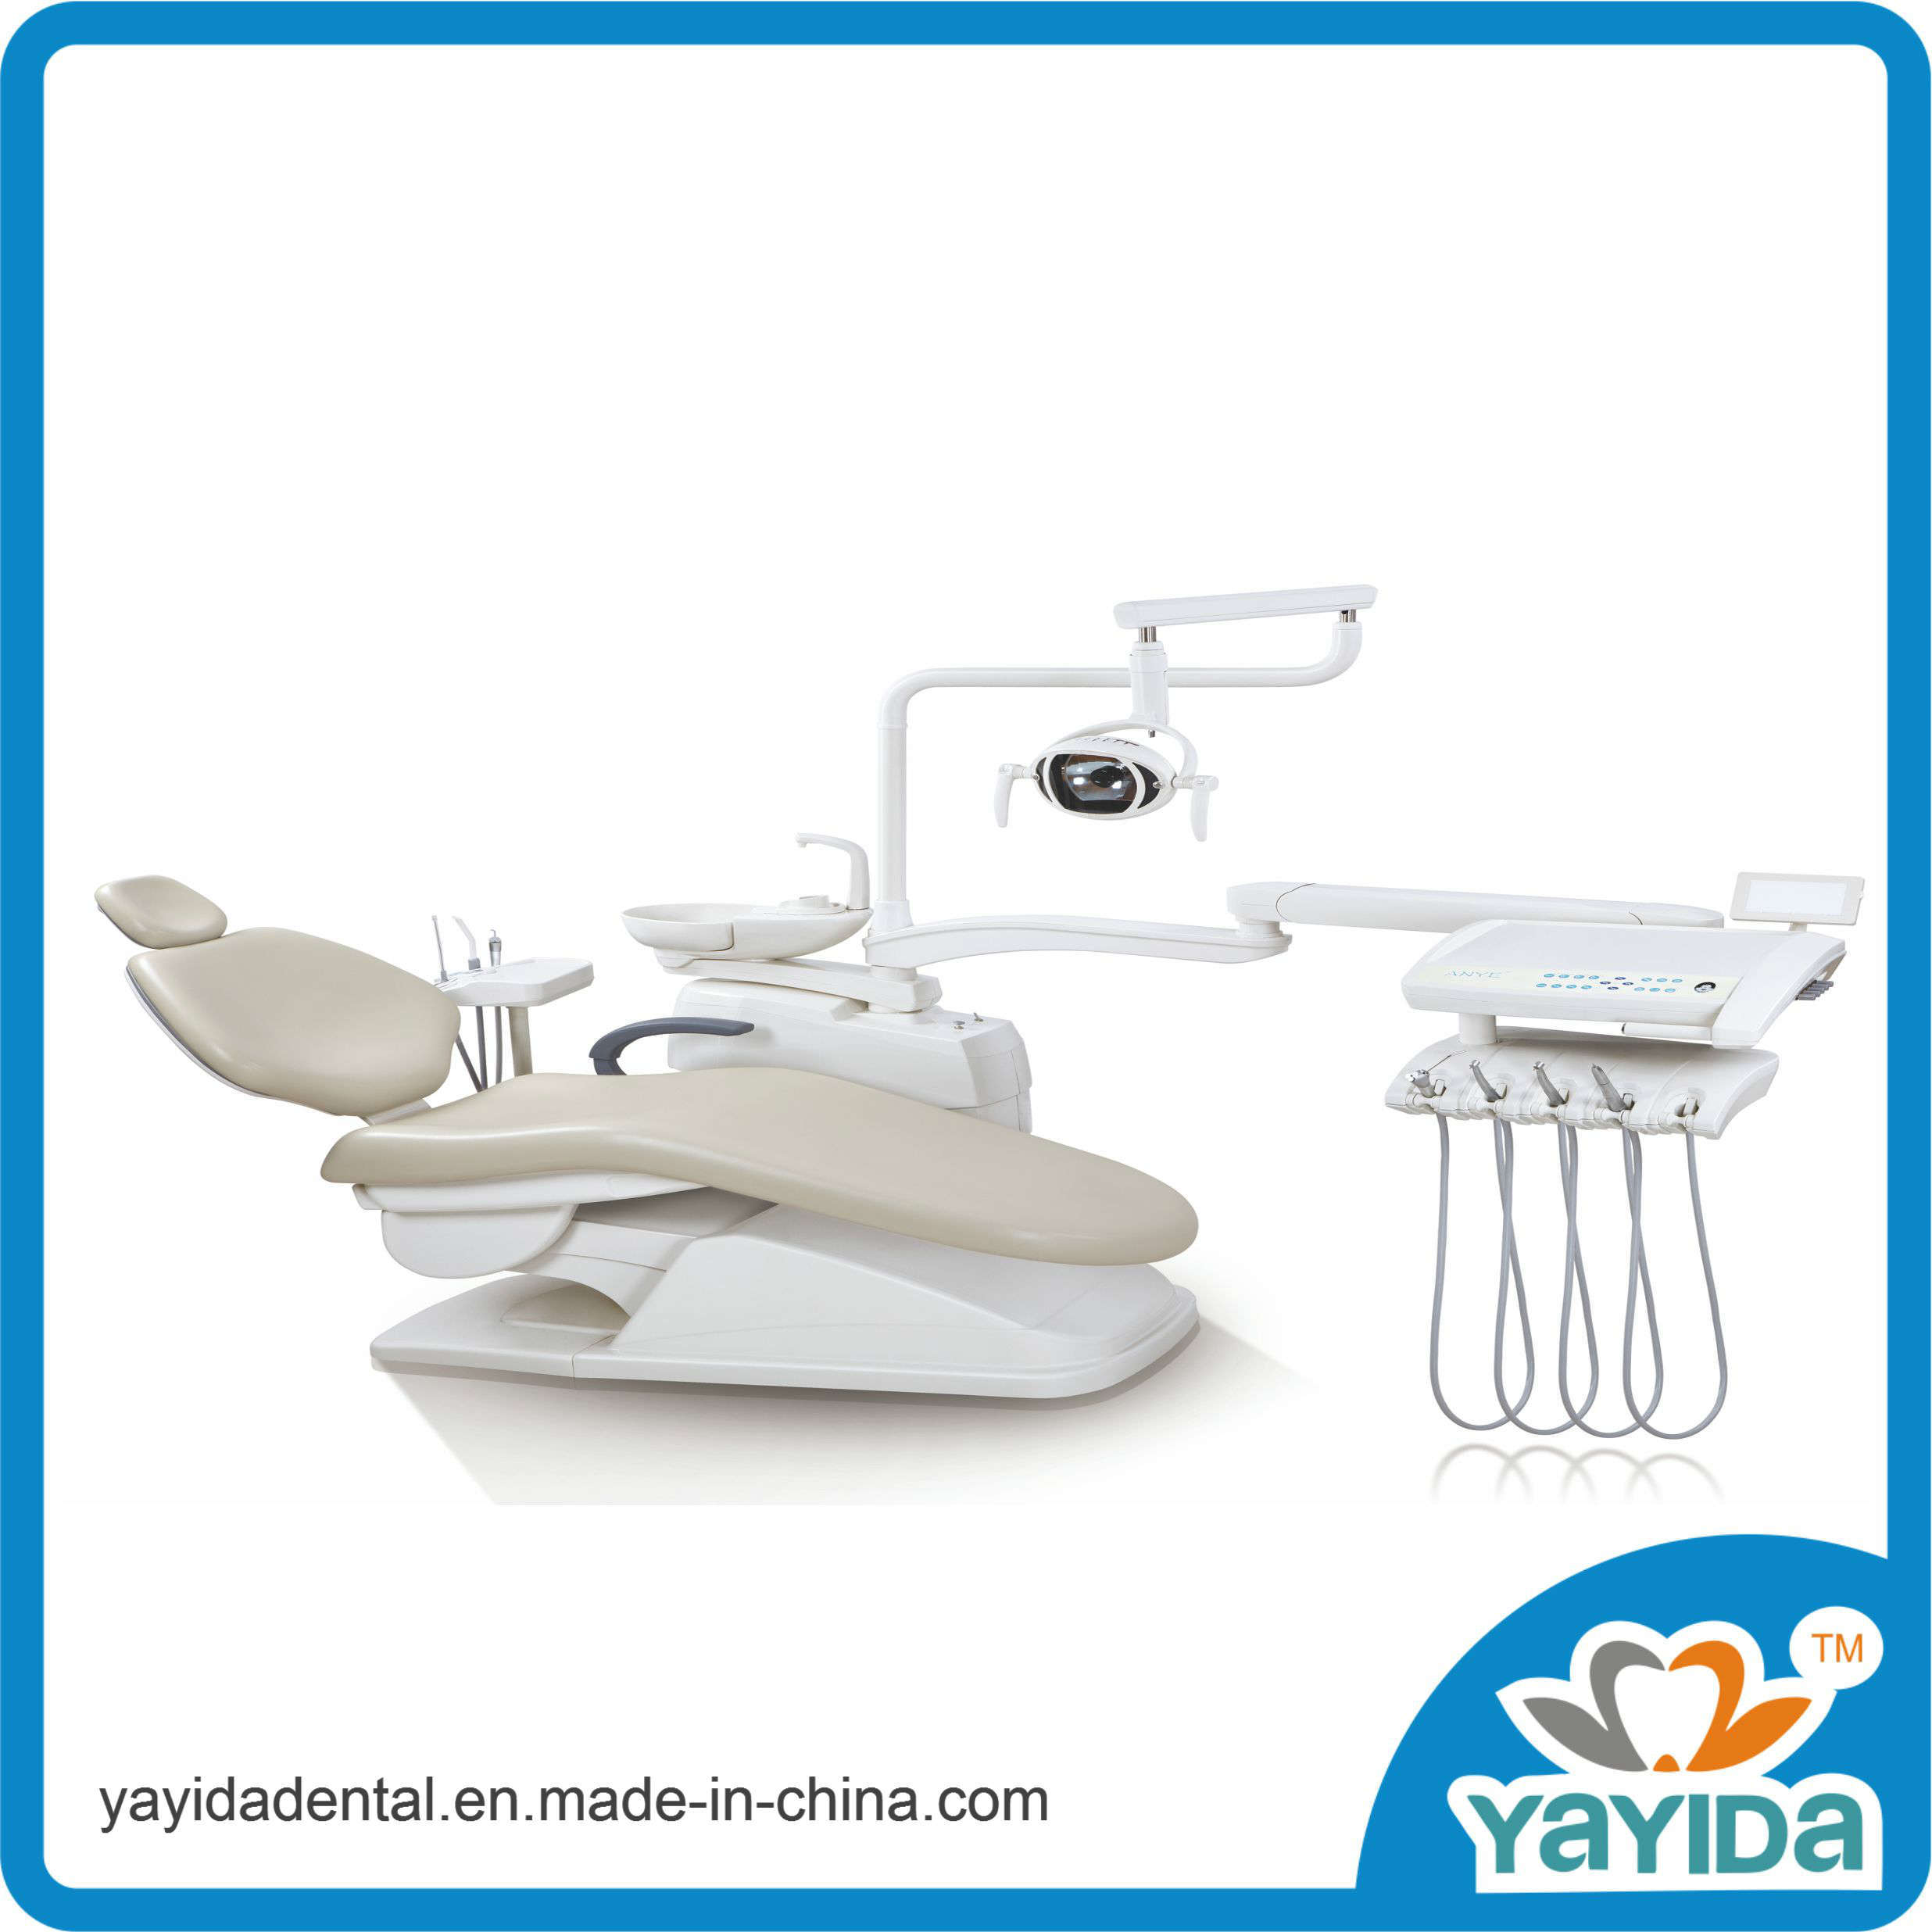 Luxury and Confortable Dental Chair